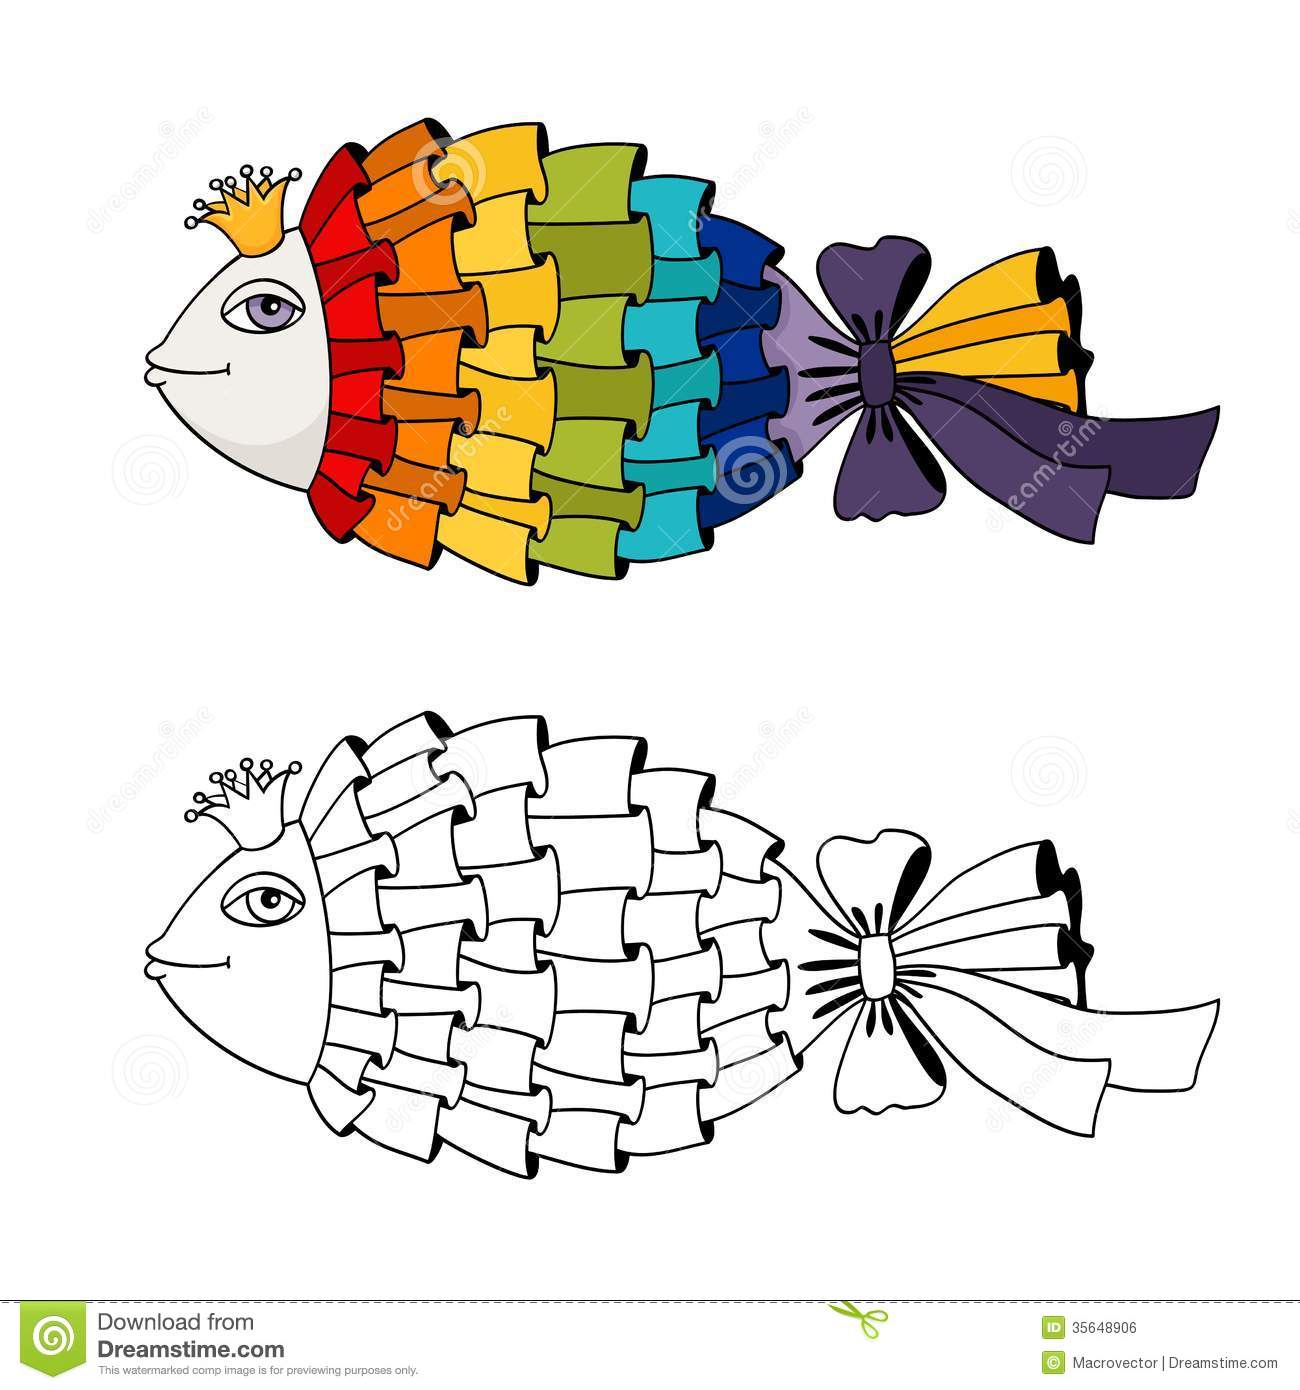 rainbow fish coloring stock vector illustration of scrapbook isolated human skull to coloring pages Rainbow Fish Coloring Page